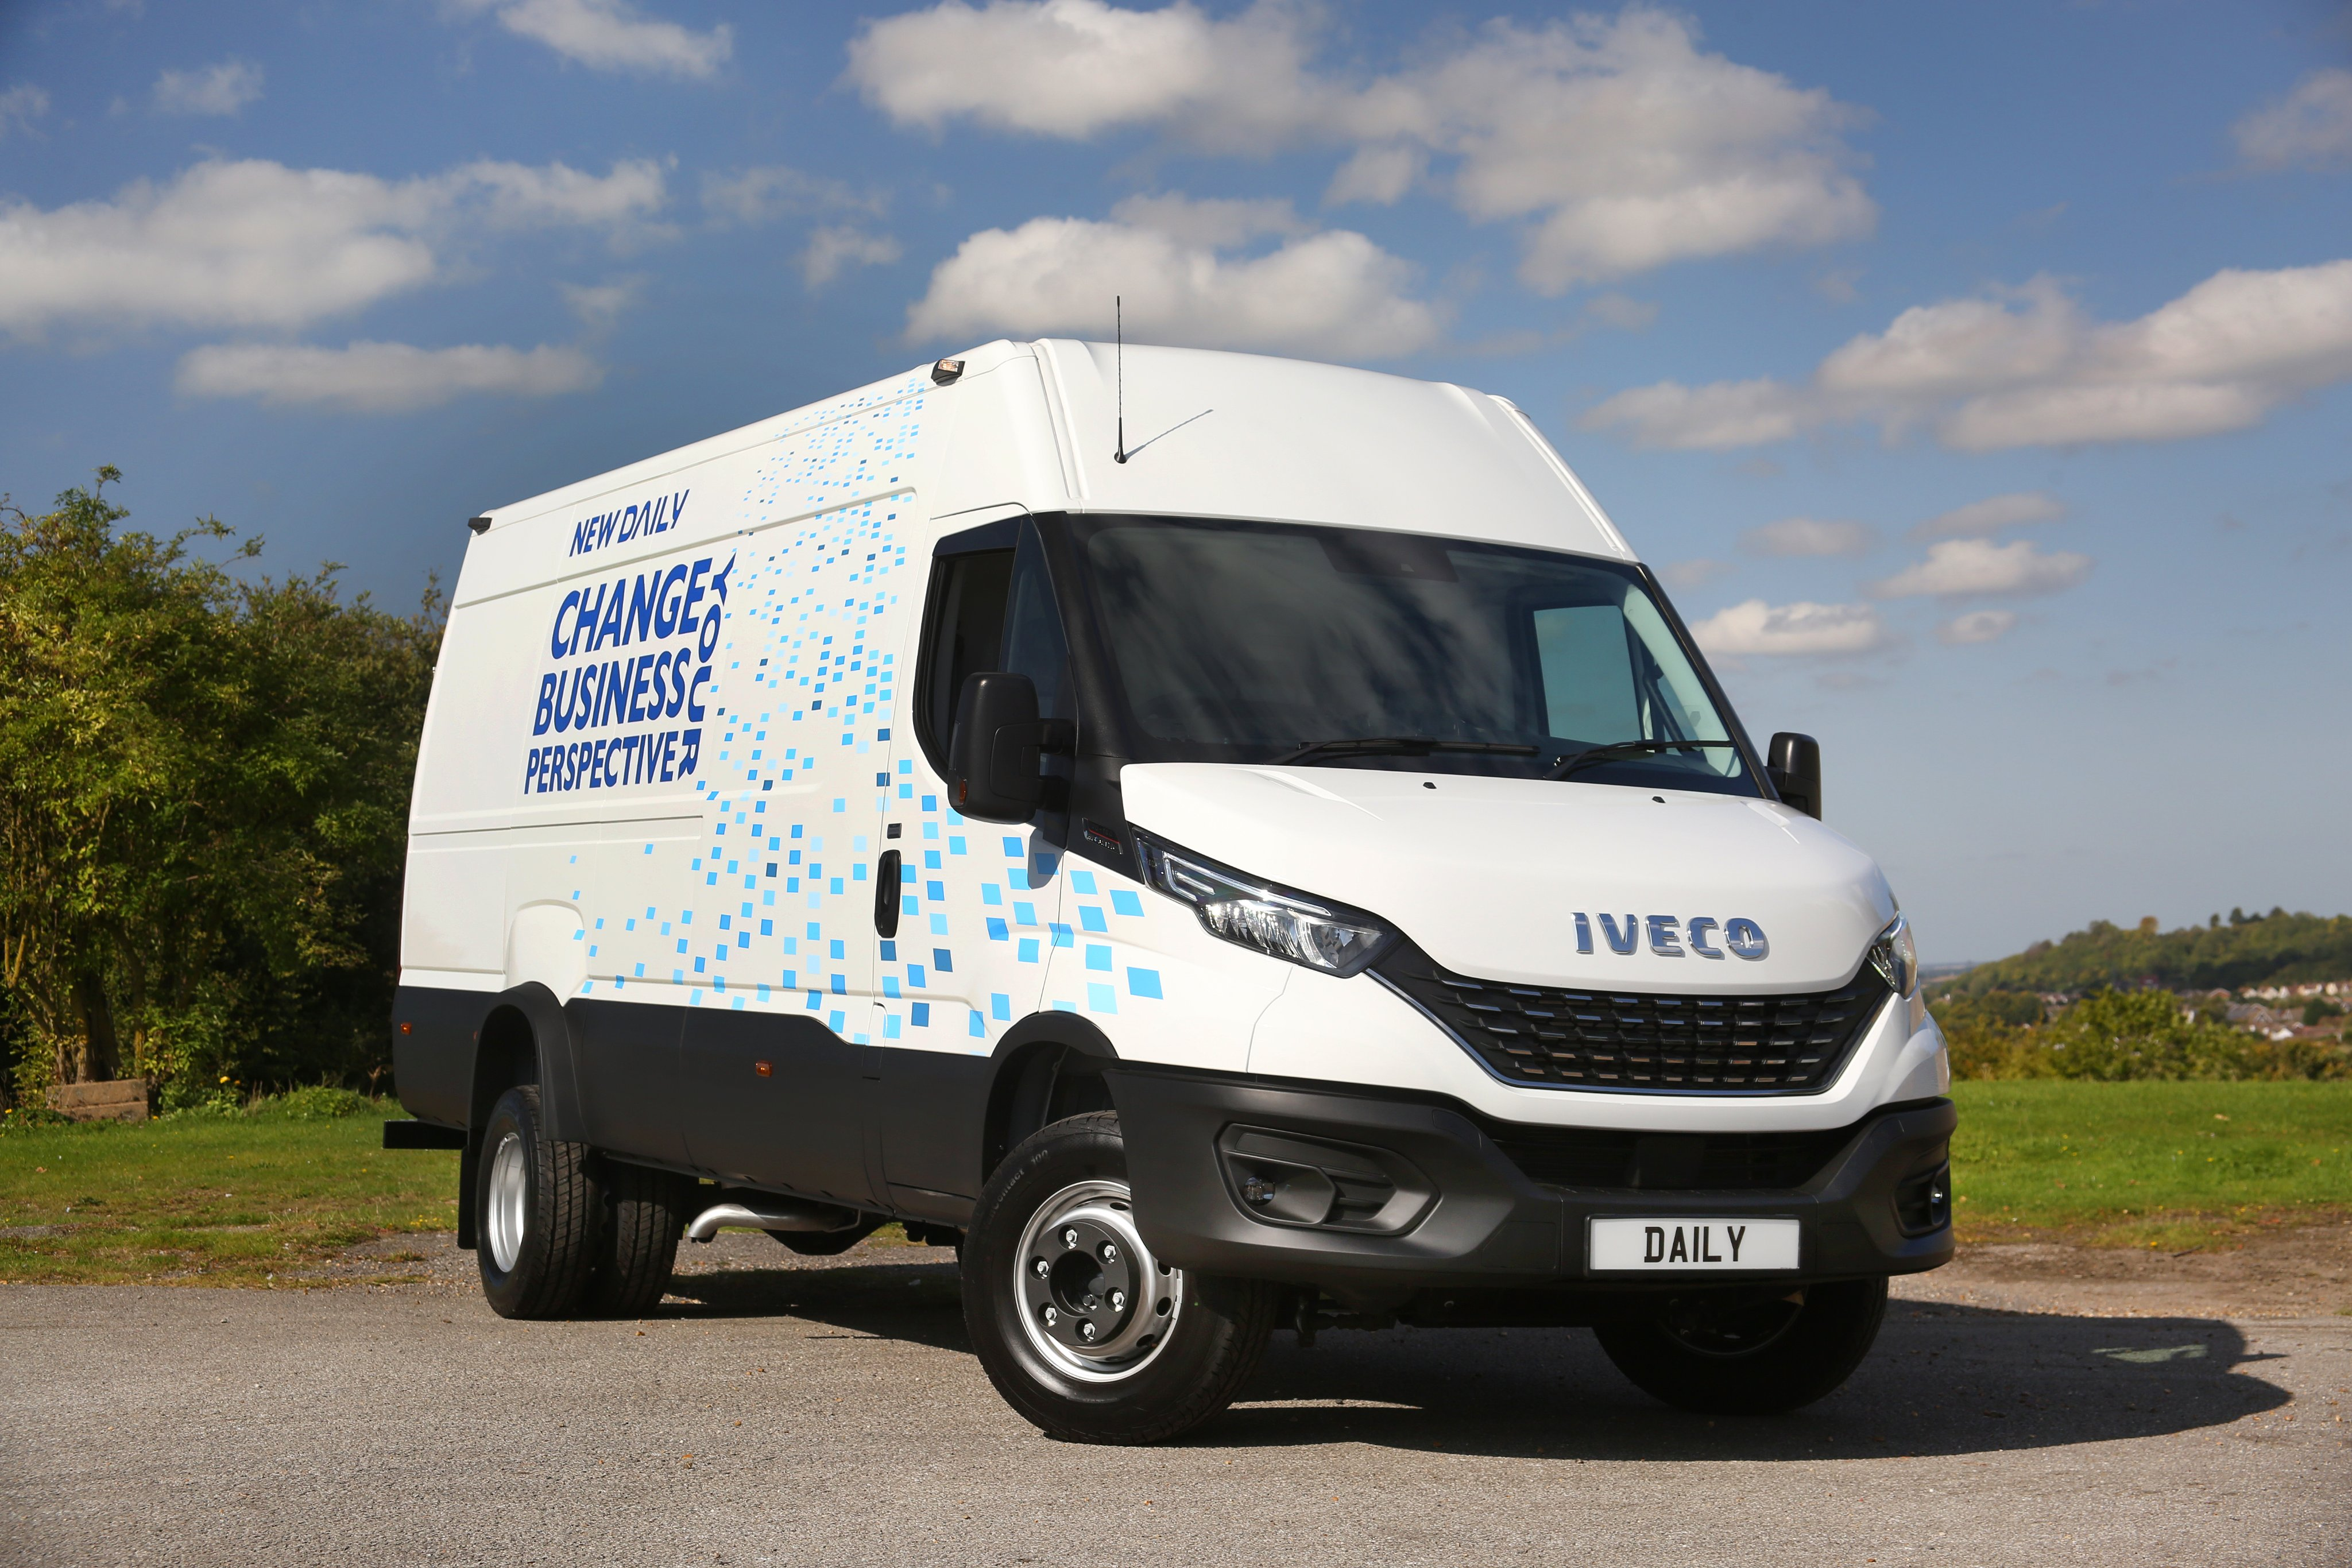 New IVECO Daily 'Business' trimline arrives at North East Truck and Van